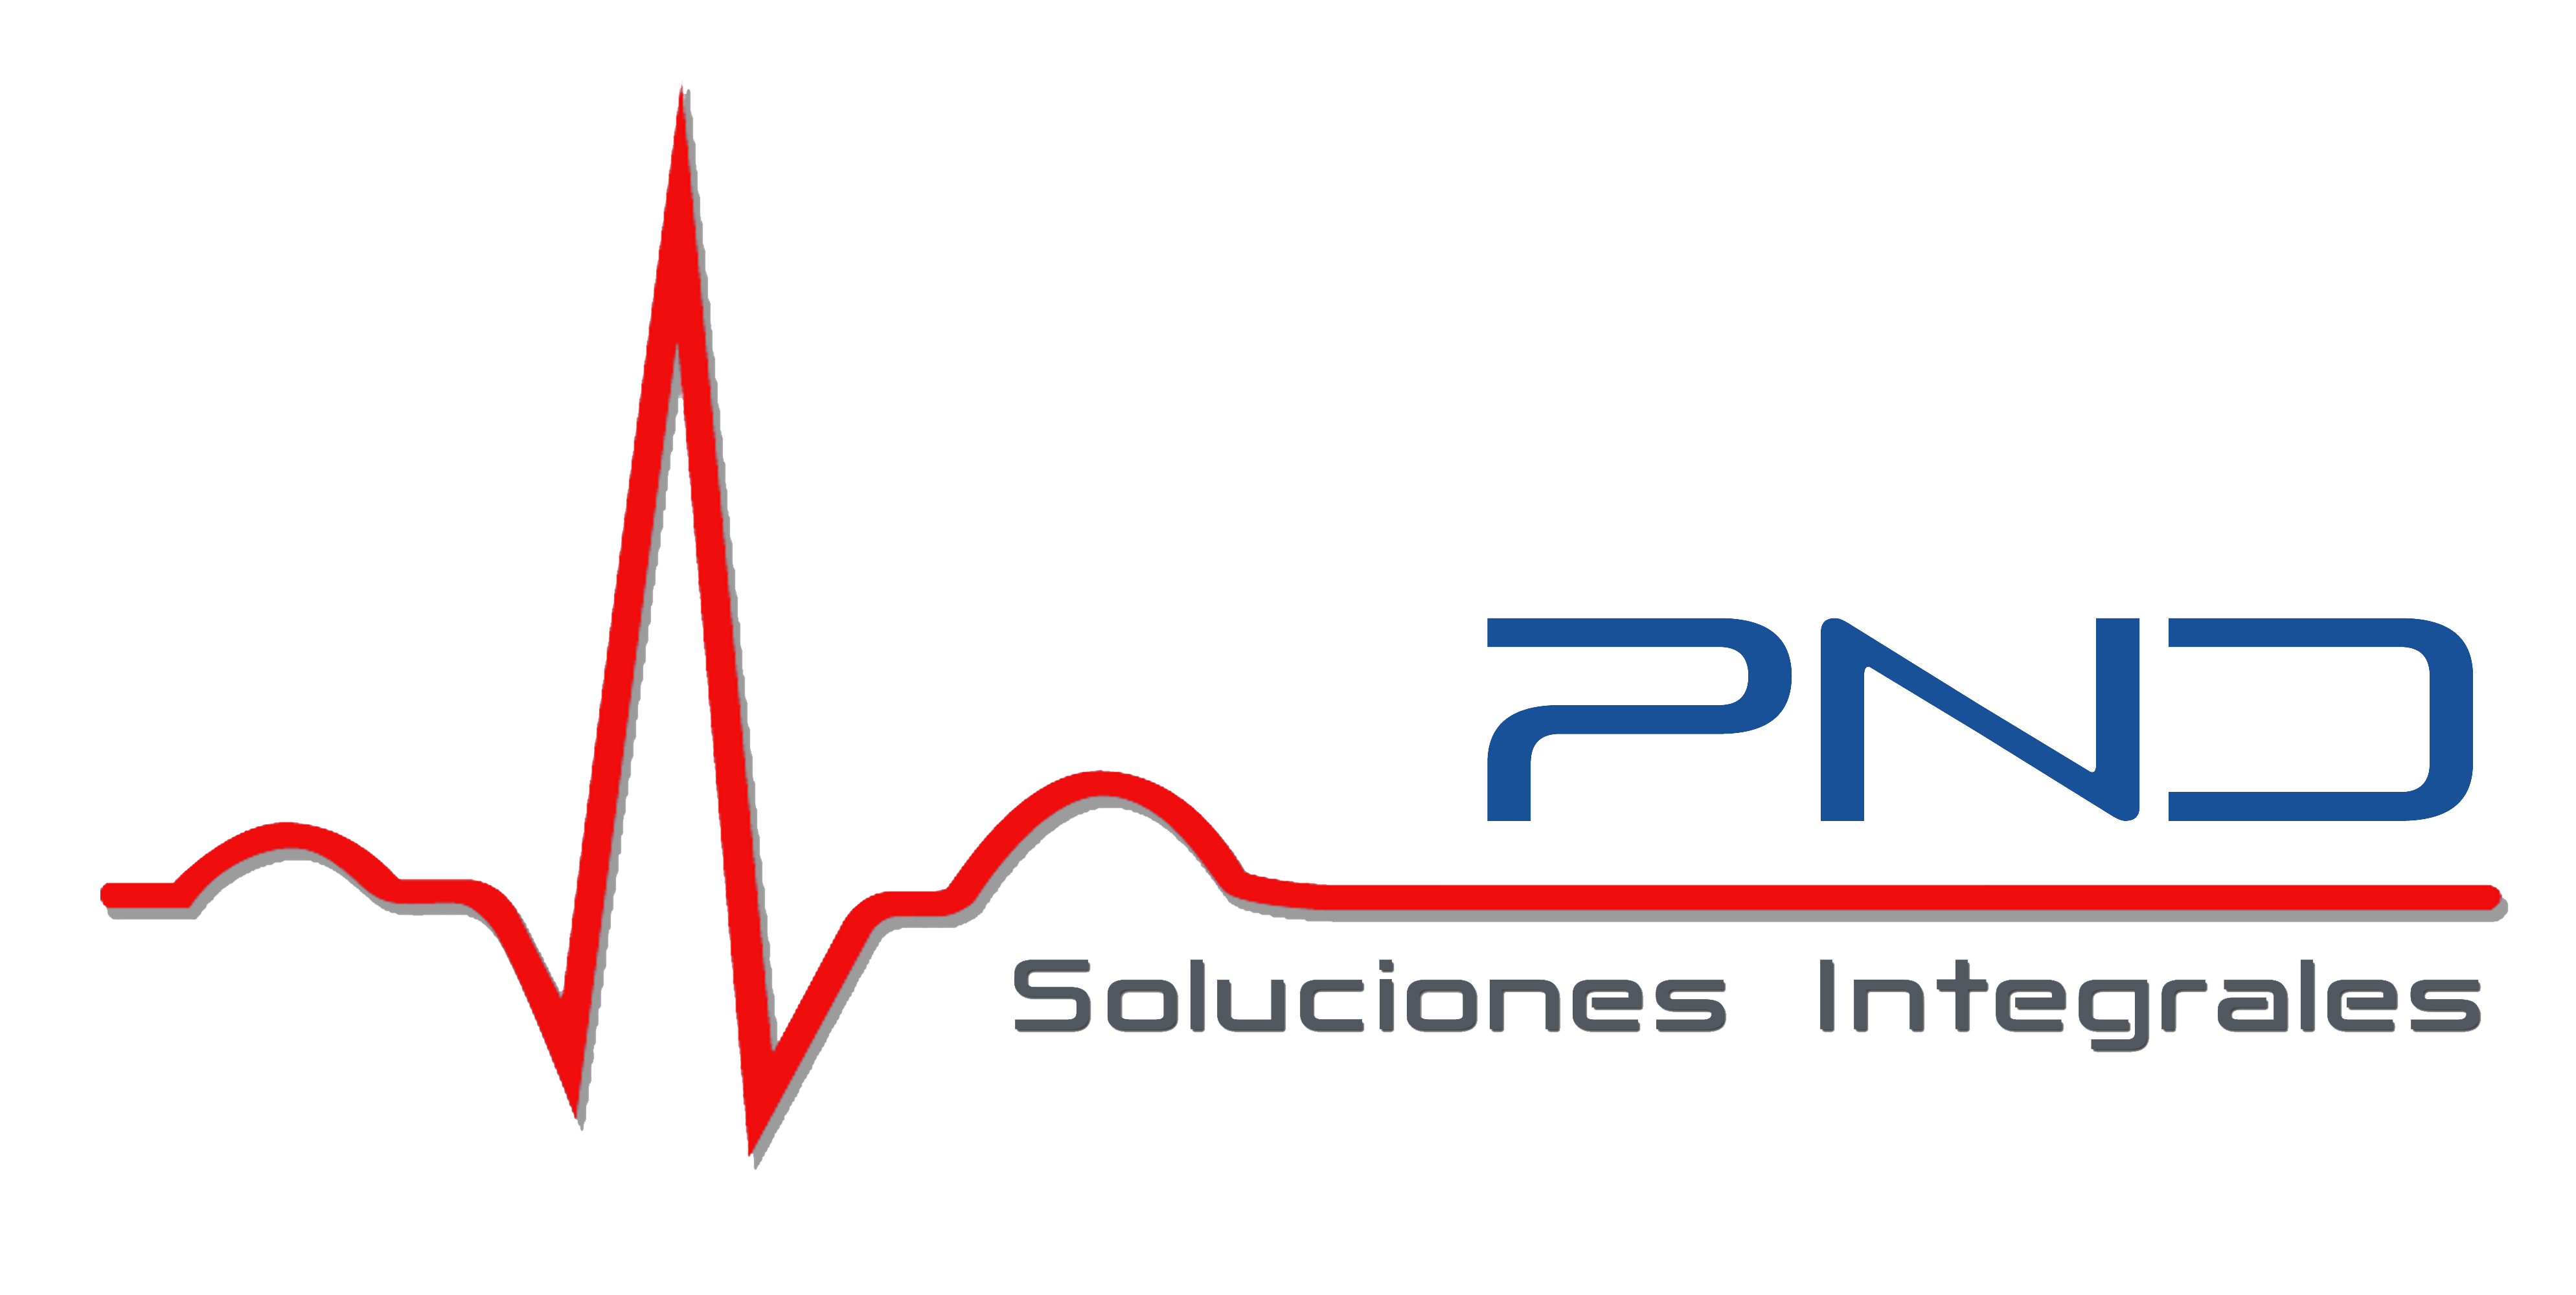 Pruebas No Destructivas Soluciones Integrales